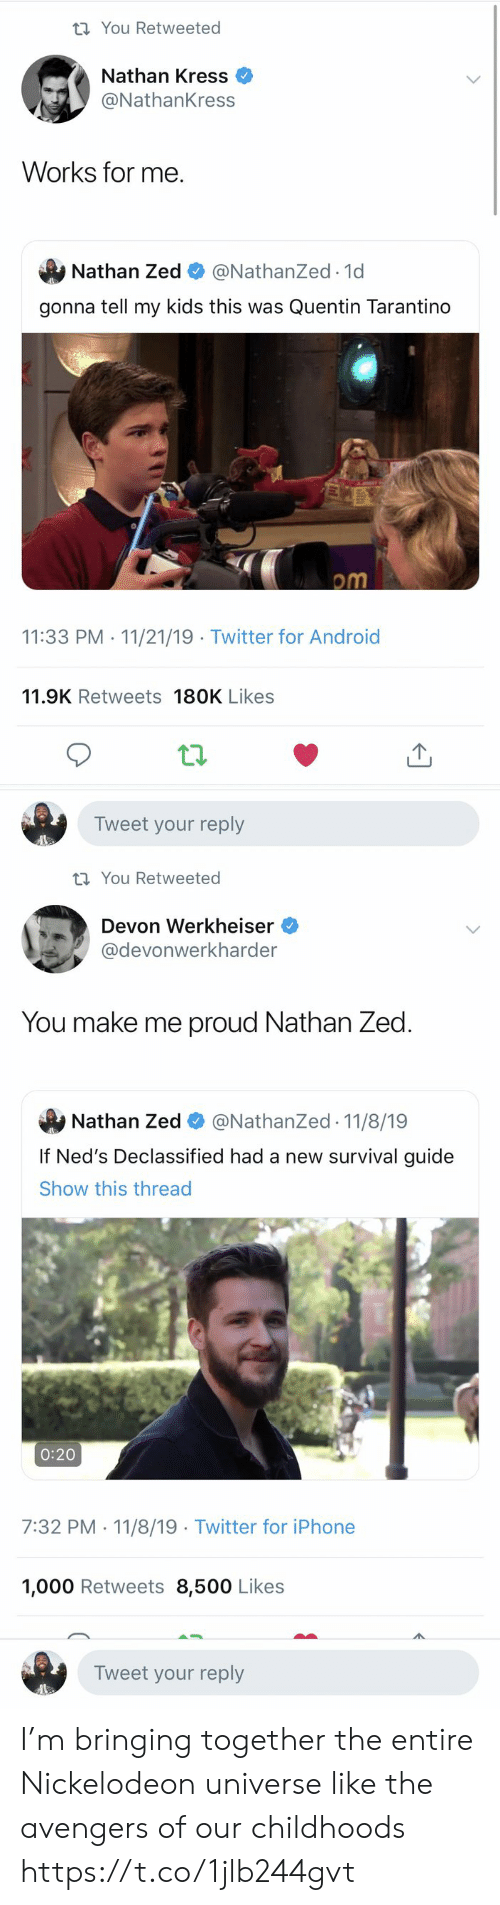 My Kids: t You Retweeted  Nathan Kress  @NathanKress  Works for me  Nathan Zed  @NathanZed.1d  gonna tell my kids this was Quentin Tarantino  om  11:33 PM 11/21/19 Twitter for Android  .  11.9K Retweets 180K Likes  Tweet your reply   t You Retweeted  Devon Werkheiser  @devonwerkharder  You make me proud Nathan Zed  @NathanZed 11/8/19  Nathan Zed  If Ned's Declassified had a new survival guide  Show this thread  0:20  7:32 PM 11/8/19 Twitter for iPhone  1,000 Retweets 8,500 Likes  Tweet your reply I'm bringing together the entire Nickelodeon universe like the avengers of our childhoods https://t.co/1jlb244gvt